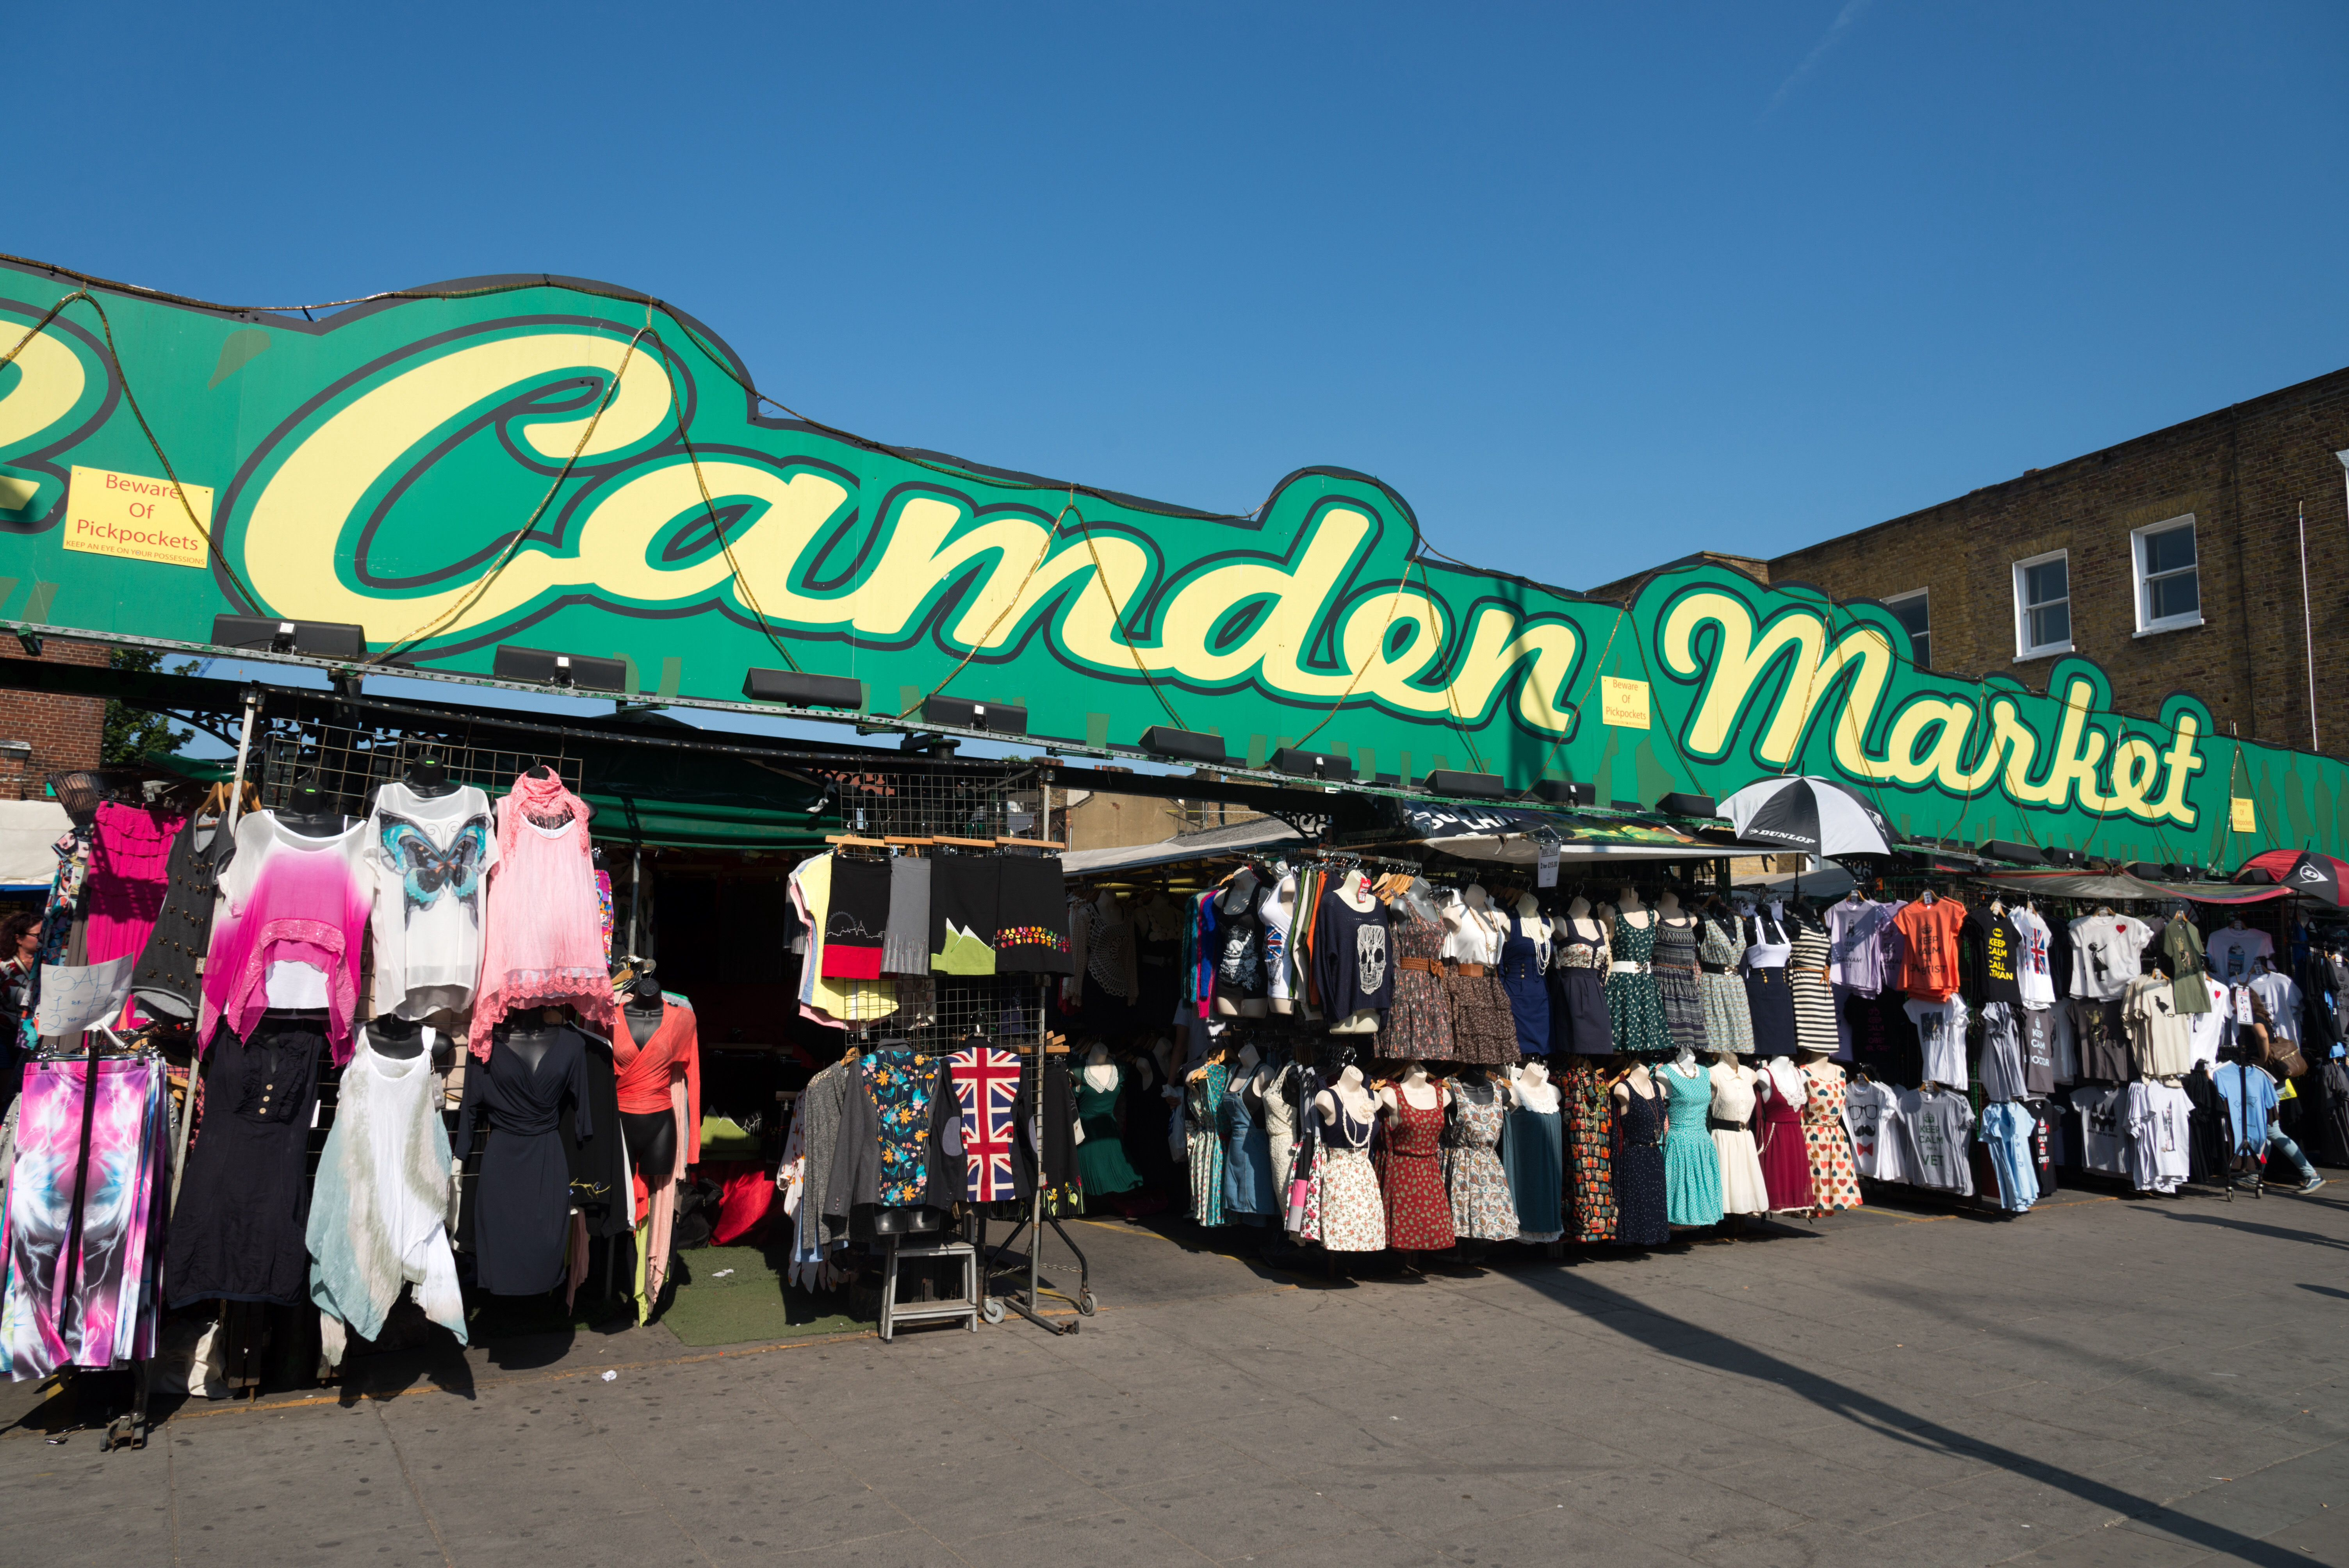 The 6 camden markets and tips for visiting them for The camden